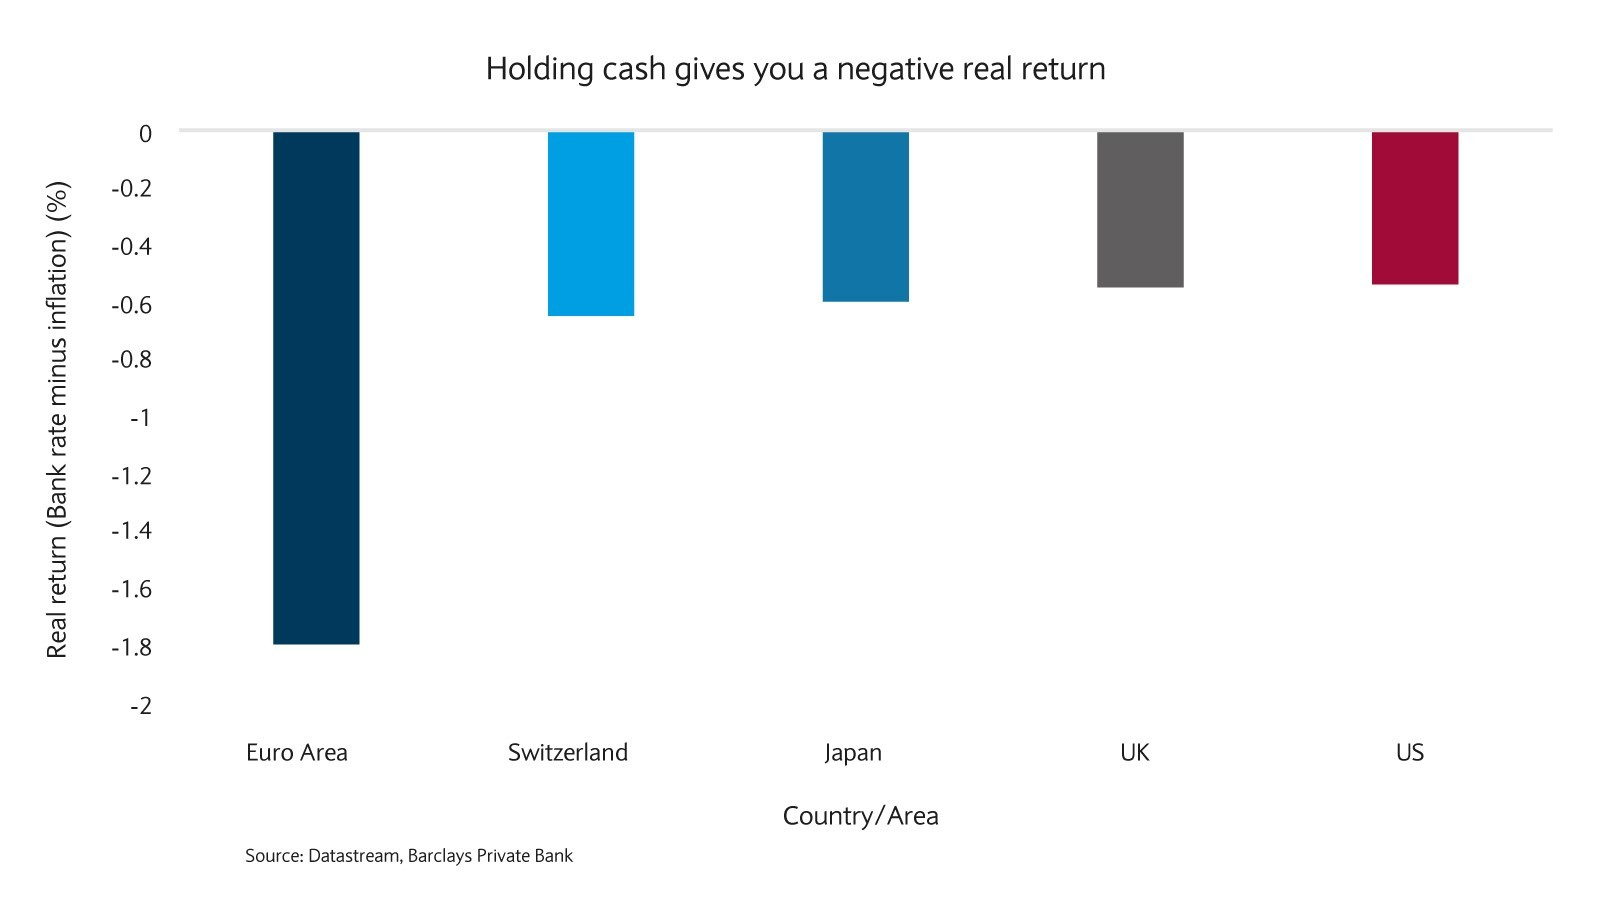 Holding cash gives you a negative real return